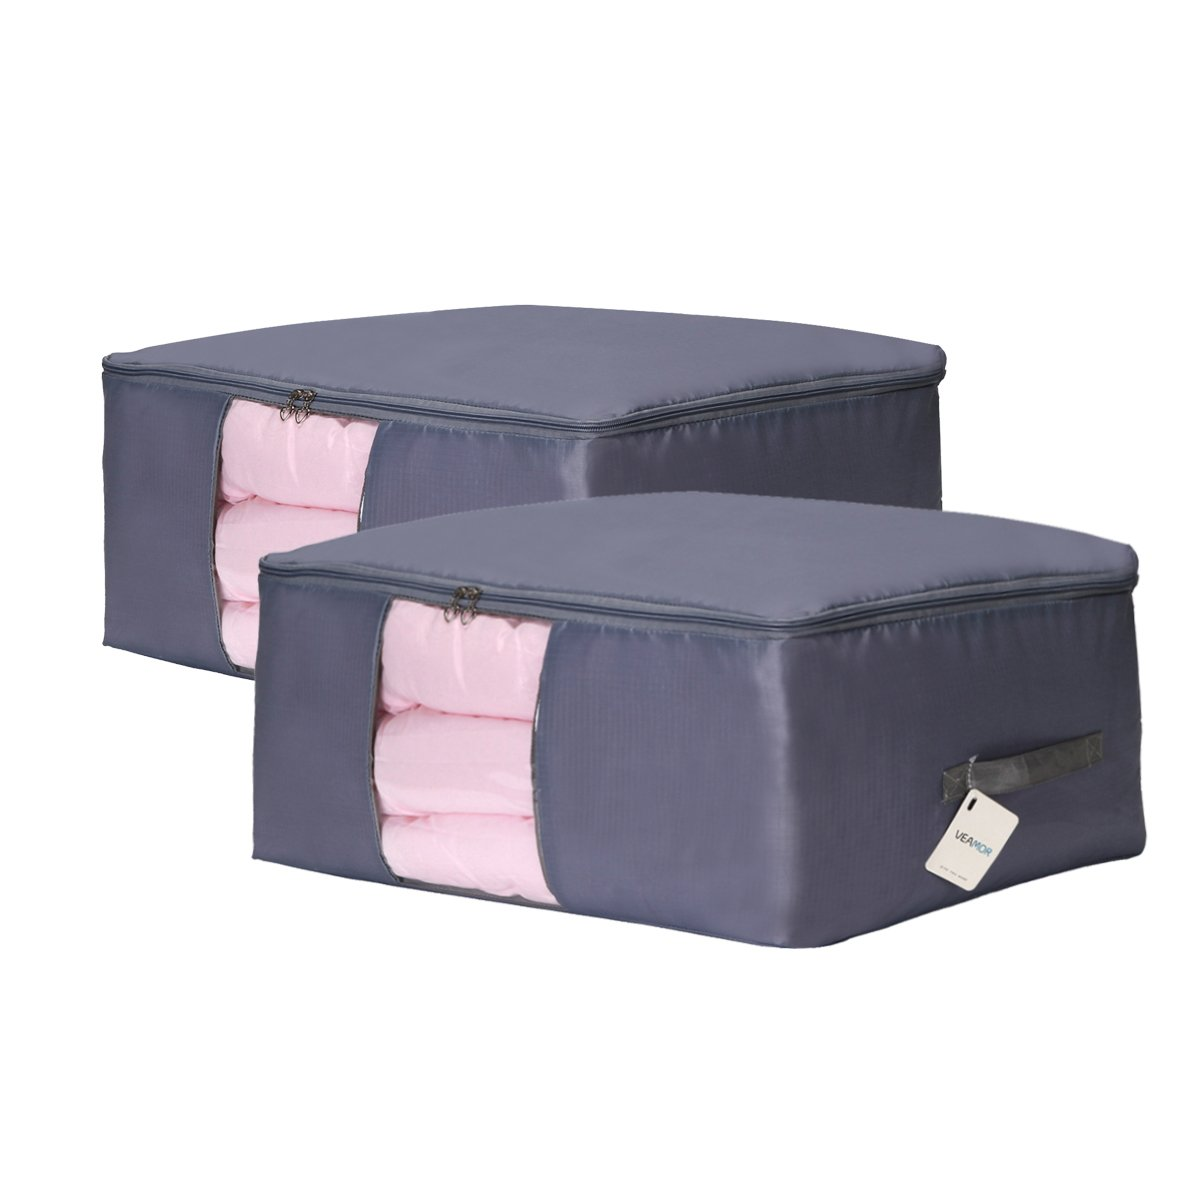 VEAMOR King Quilt Storage Bags Pack of 2,Pillow